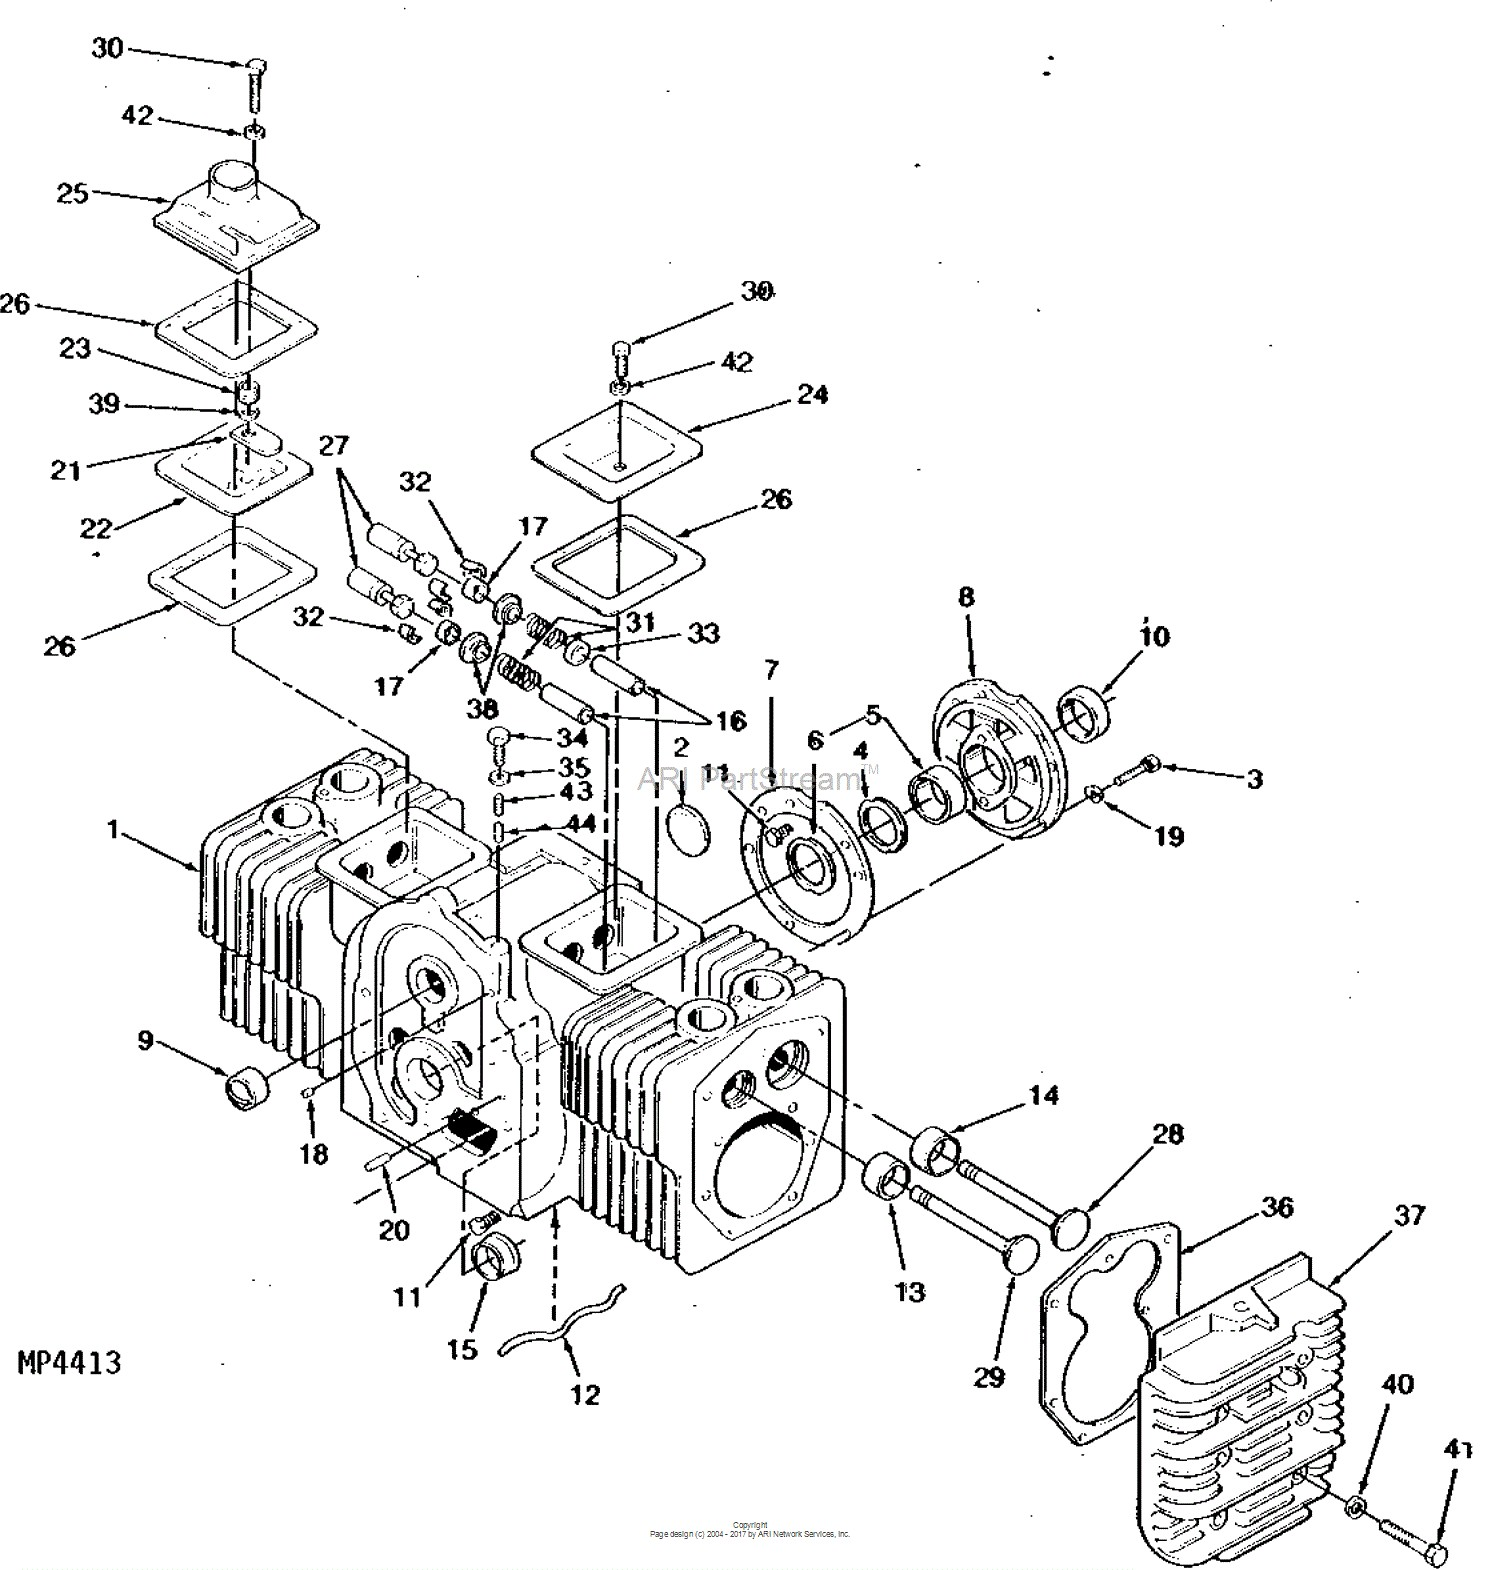 ... Wiring Diagrams Schematics Source Onan Engine Parts Diagram John Deere  Parts Diagrams John Deere 317 Hydrostatic